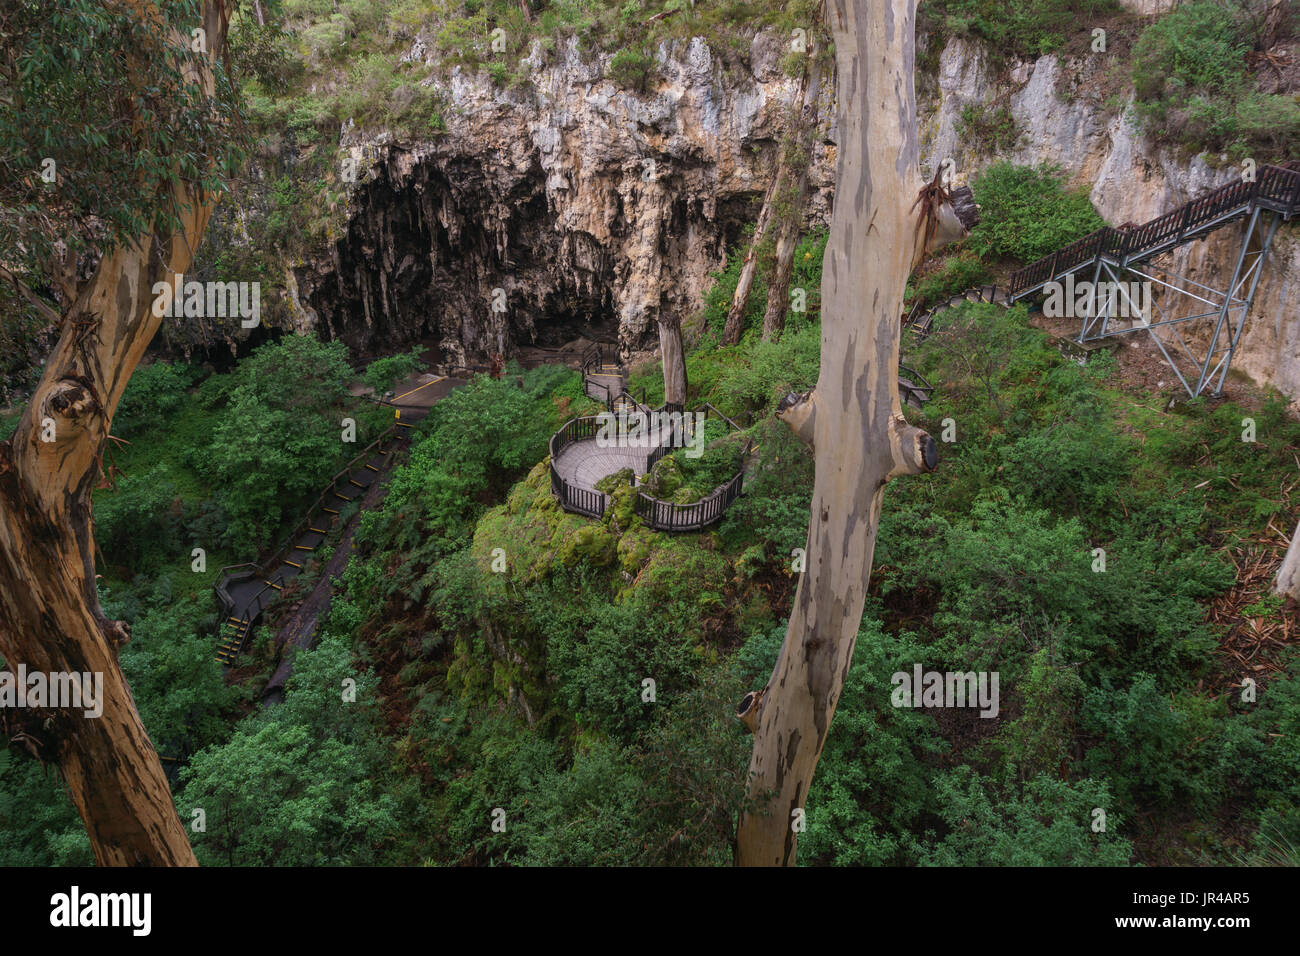 Abyss at the entrance of Lake cave, Margaret river region, South-western Australia Stock Photo